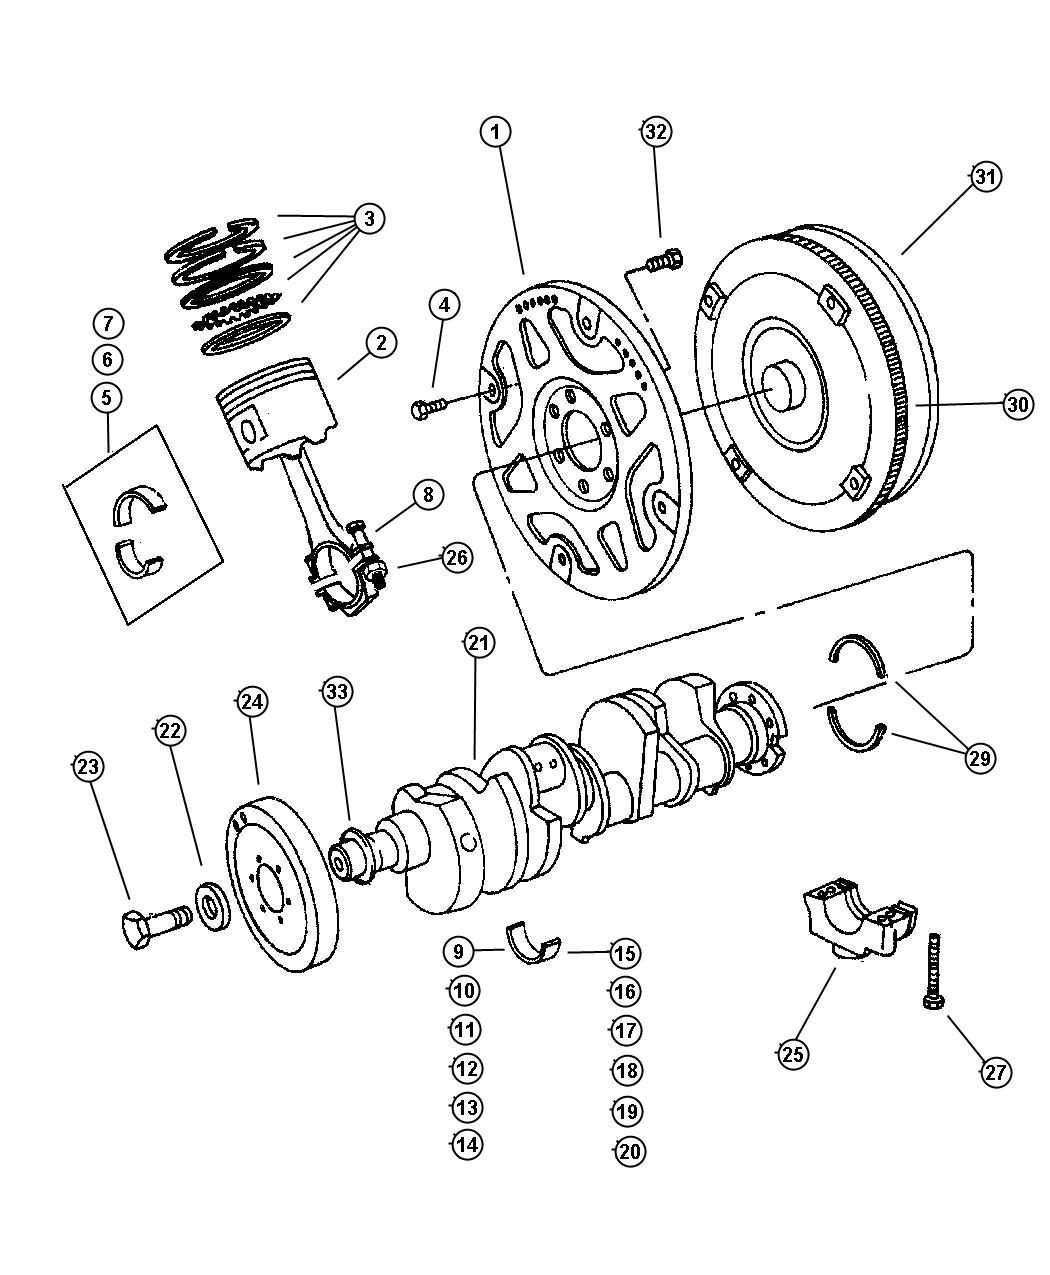 2001 Jeep Grand Cherokee Torque Converter Solenoiddownload